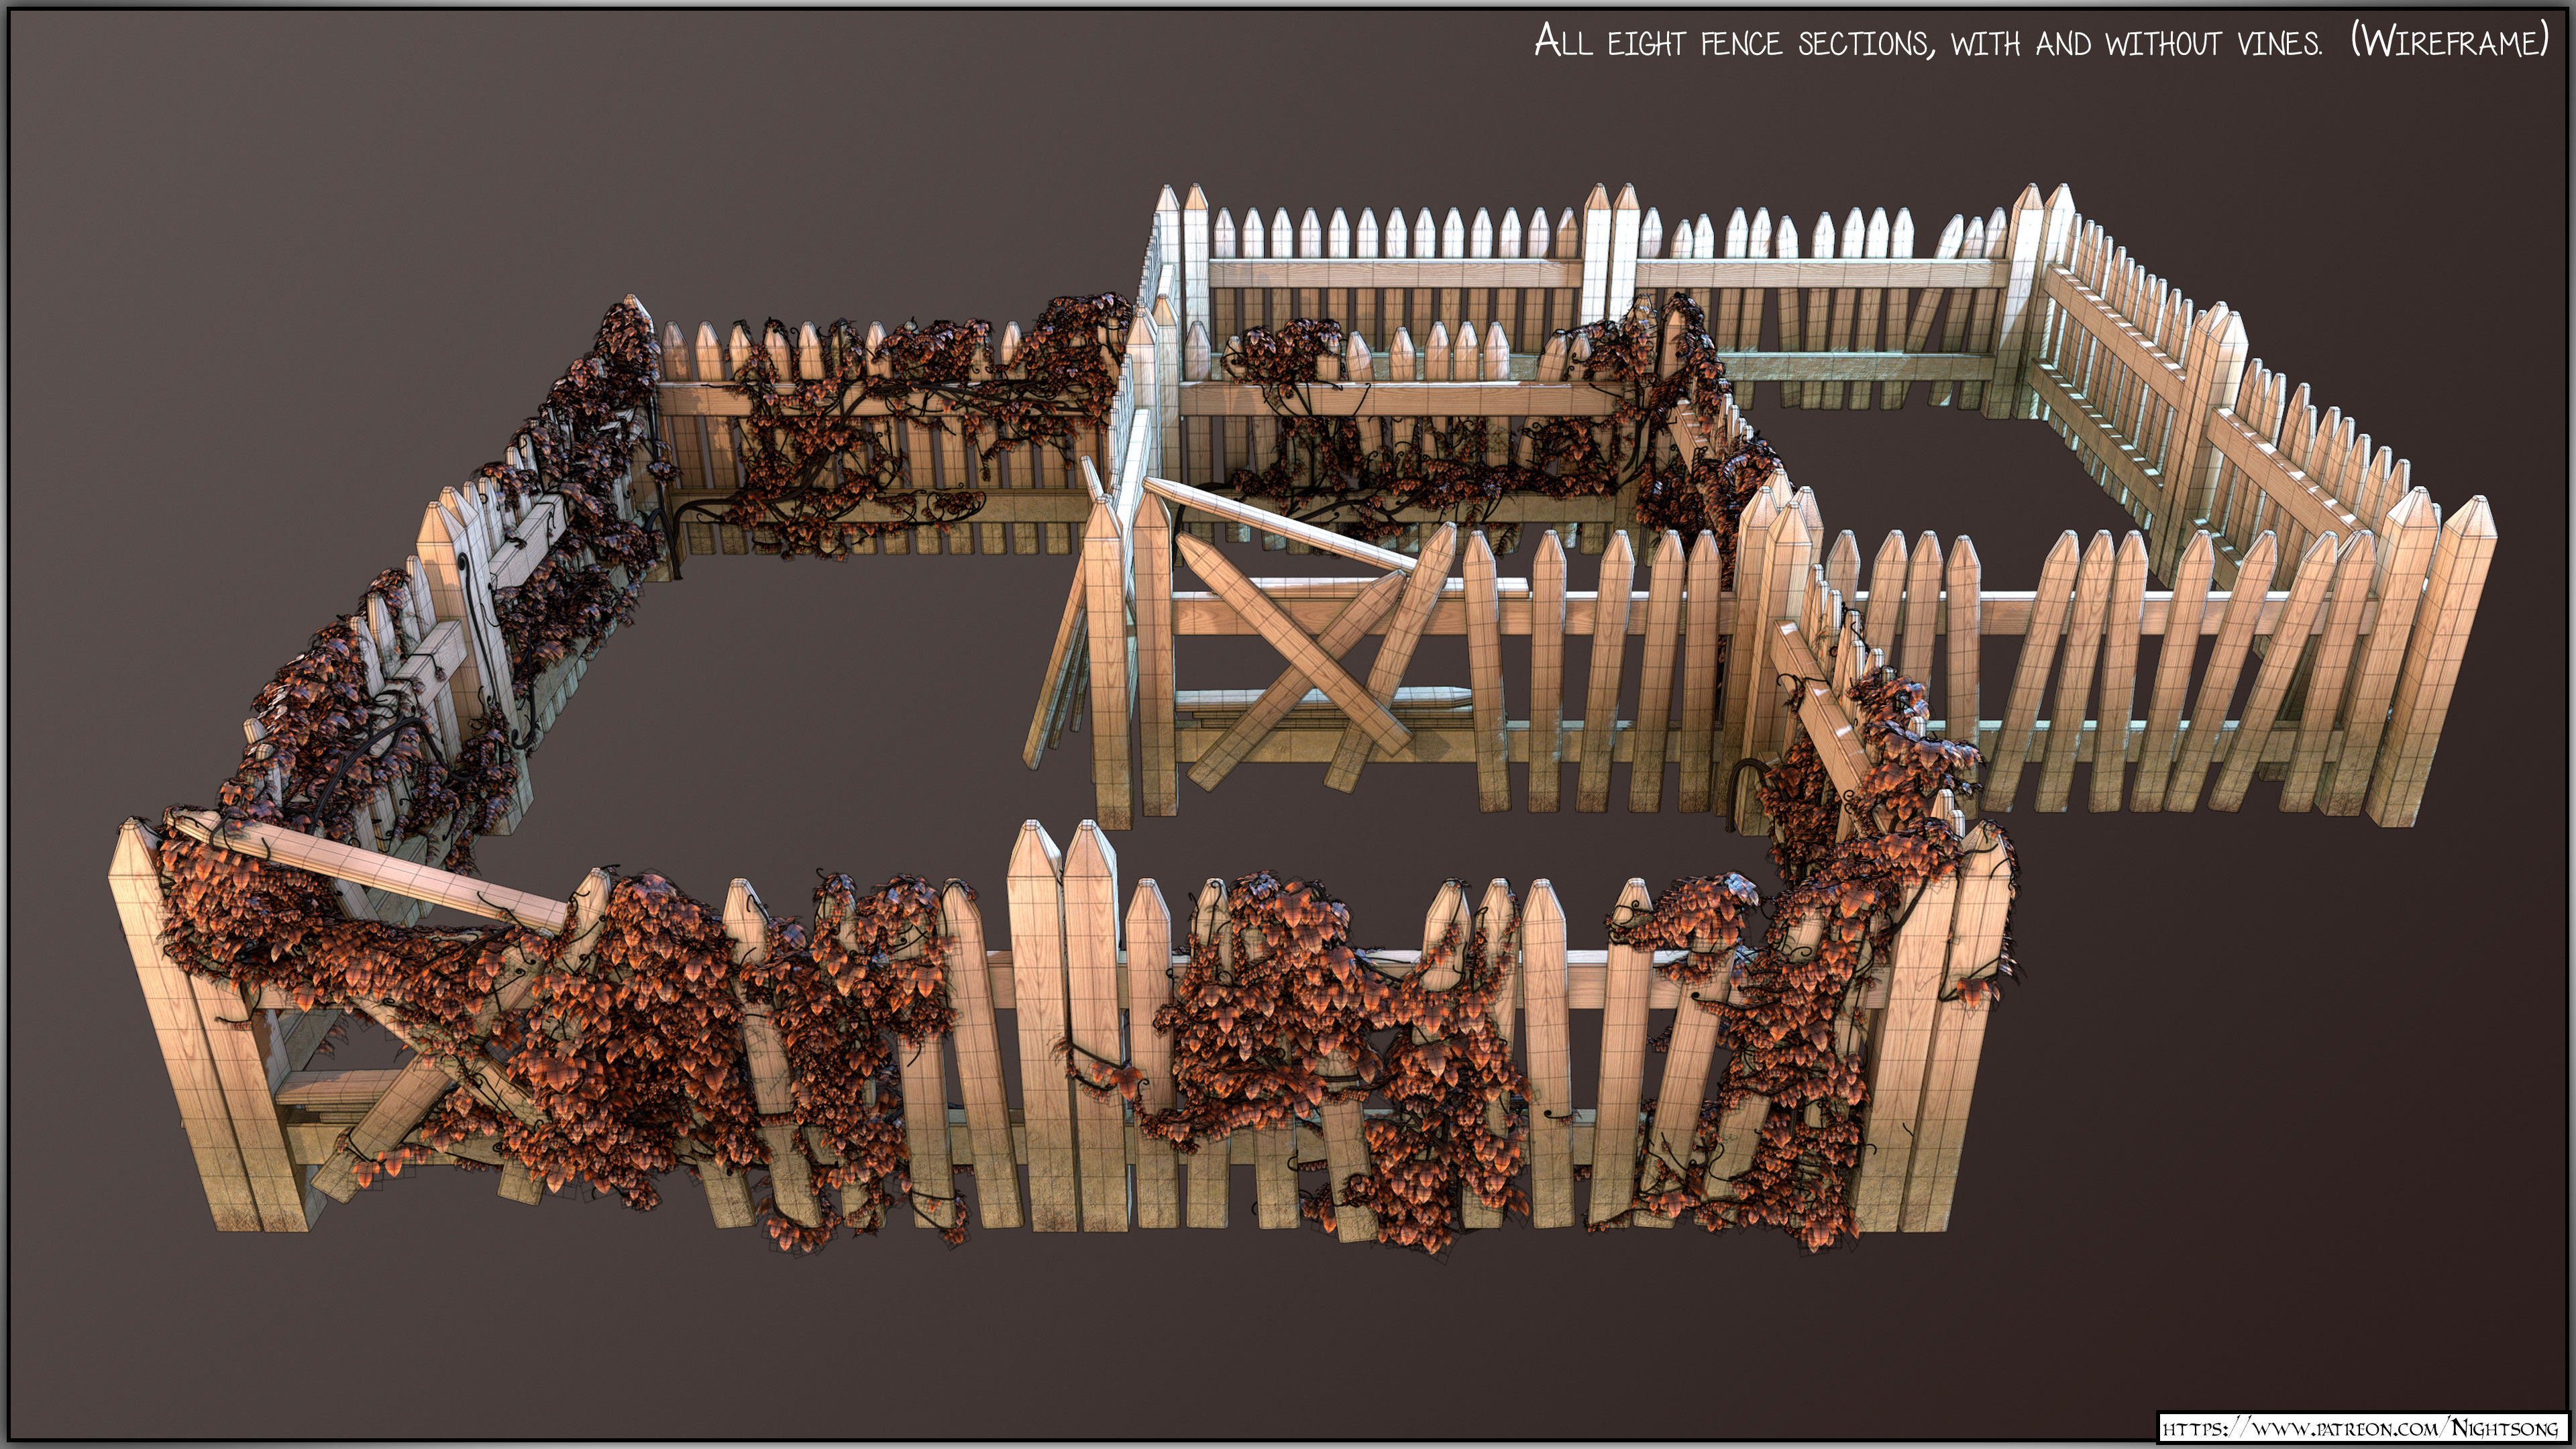 A Marmoset Toolbag render of all fence sections. (With wireframe.)